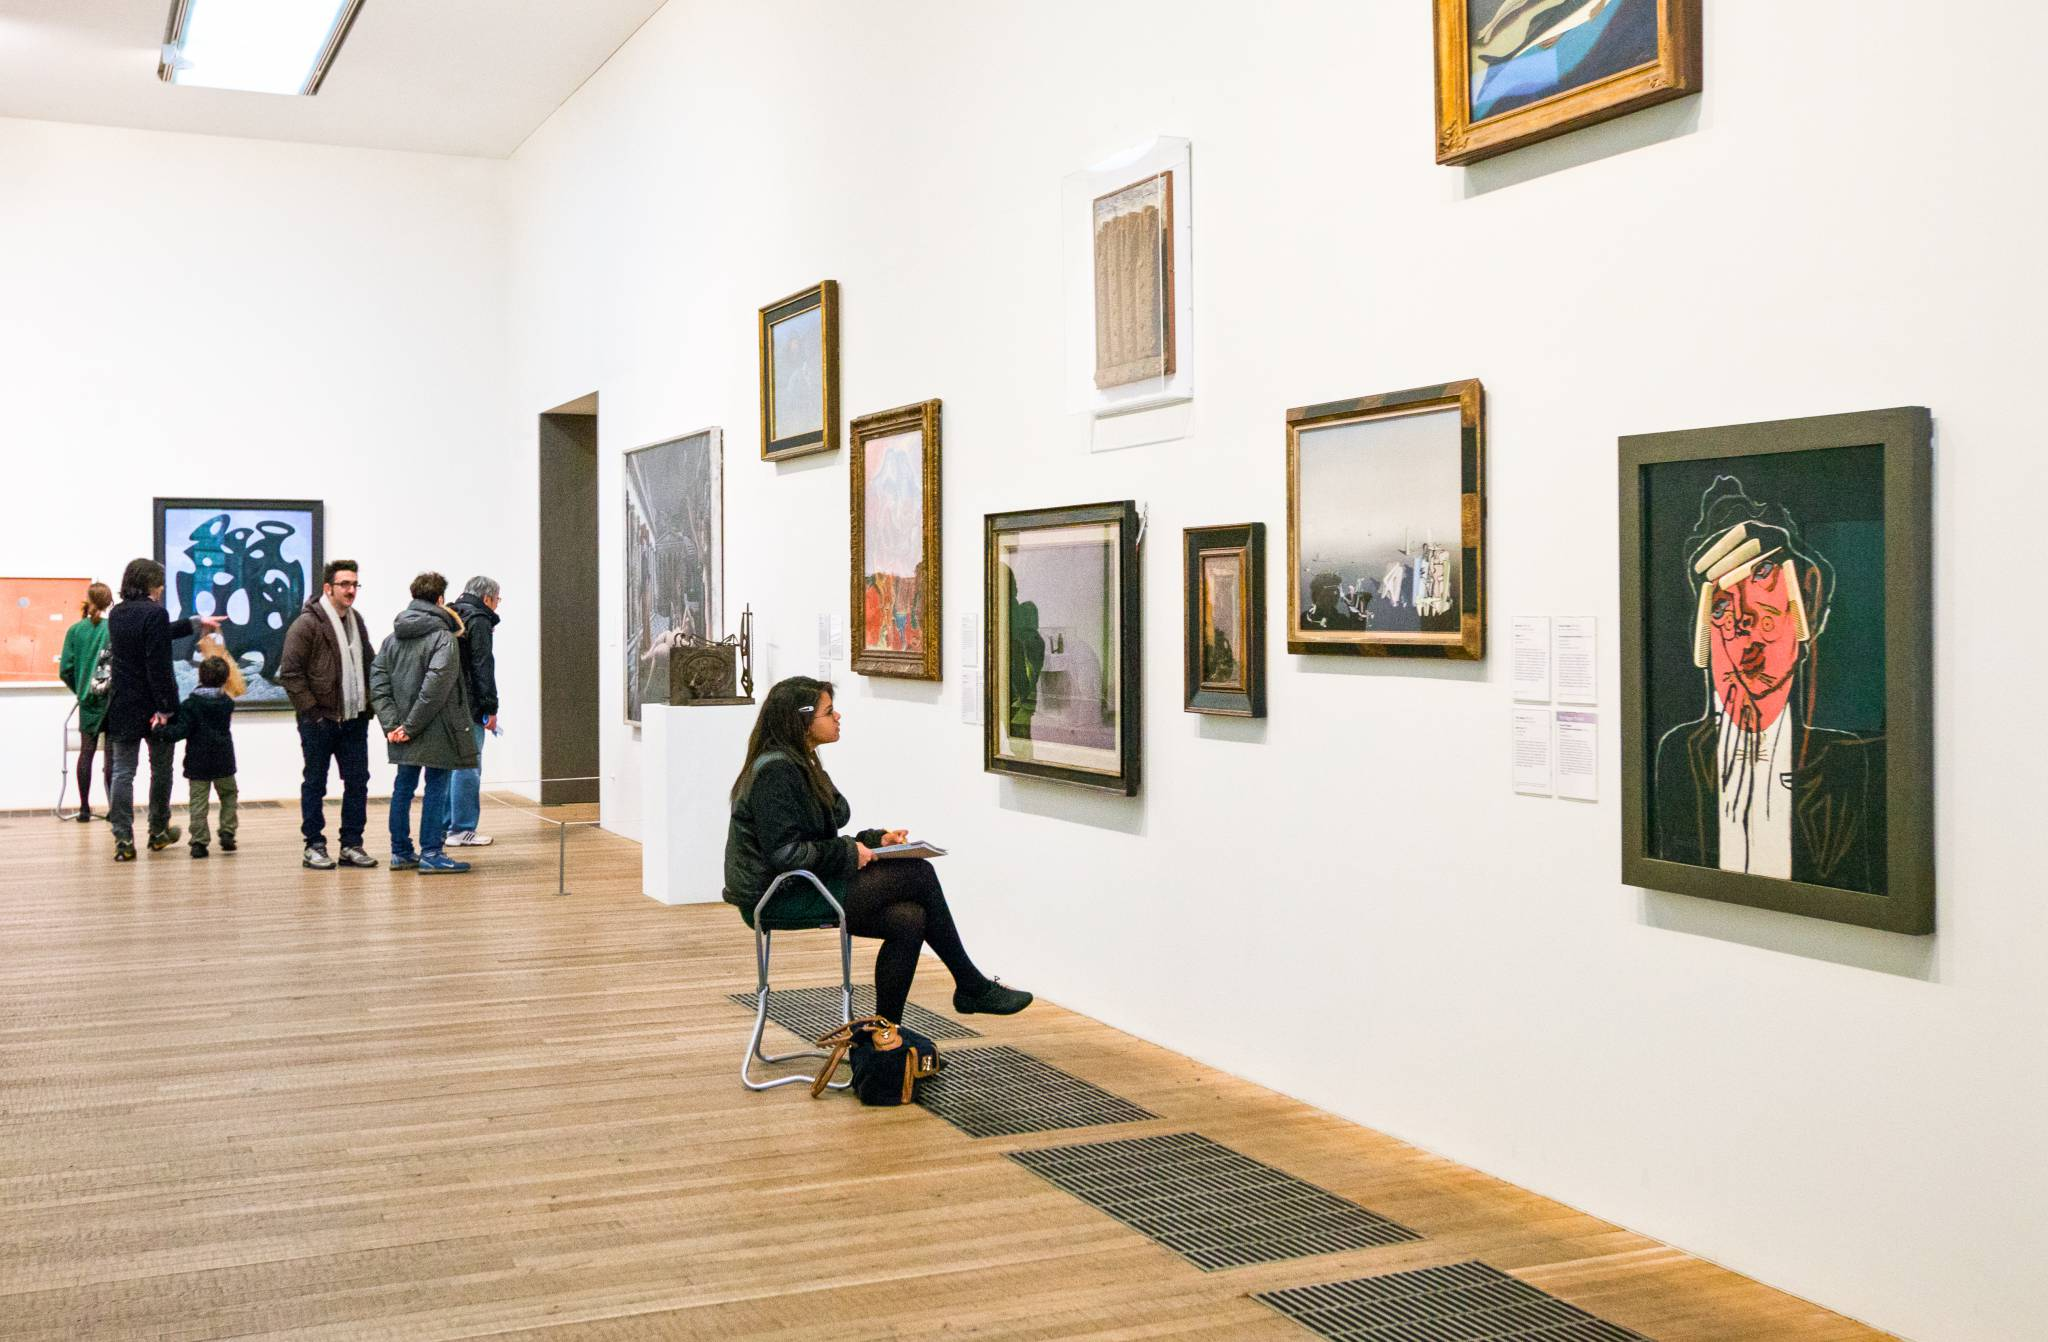 Visit Tate Modern with eTips Guide